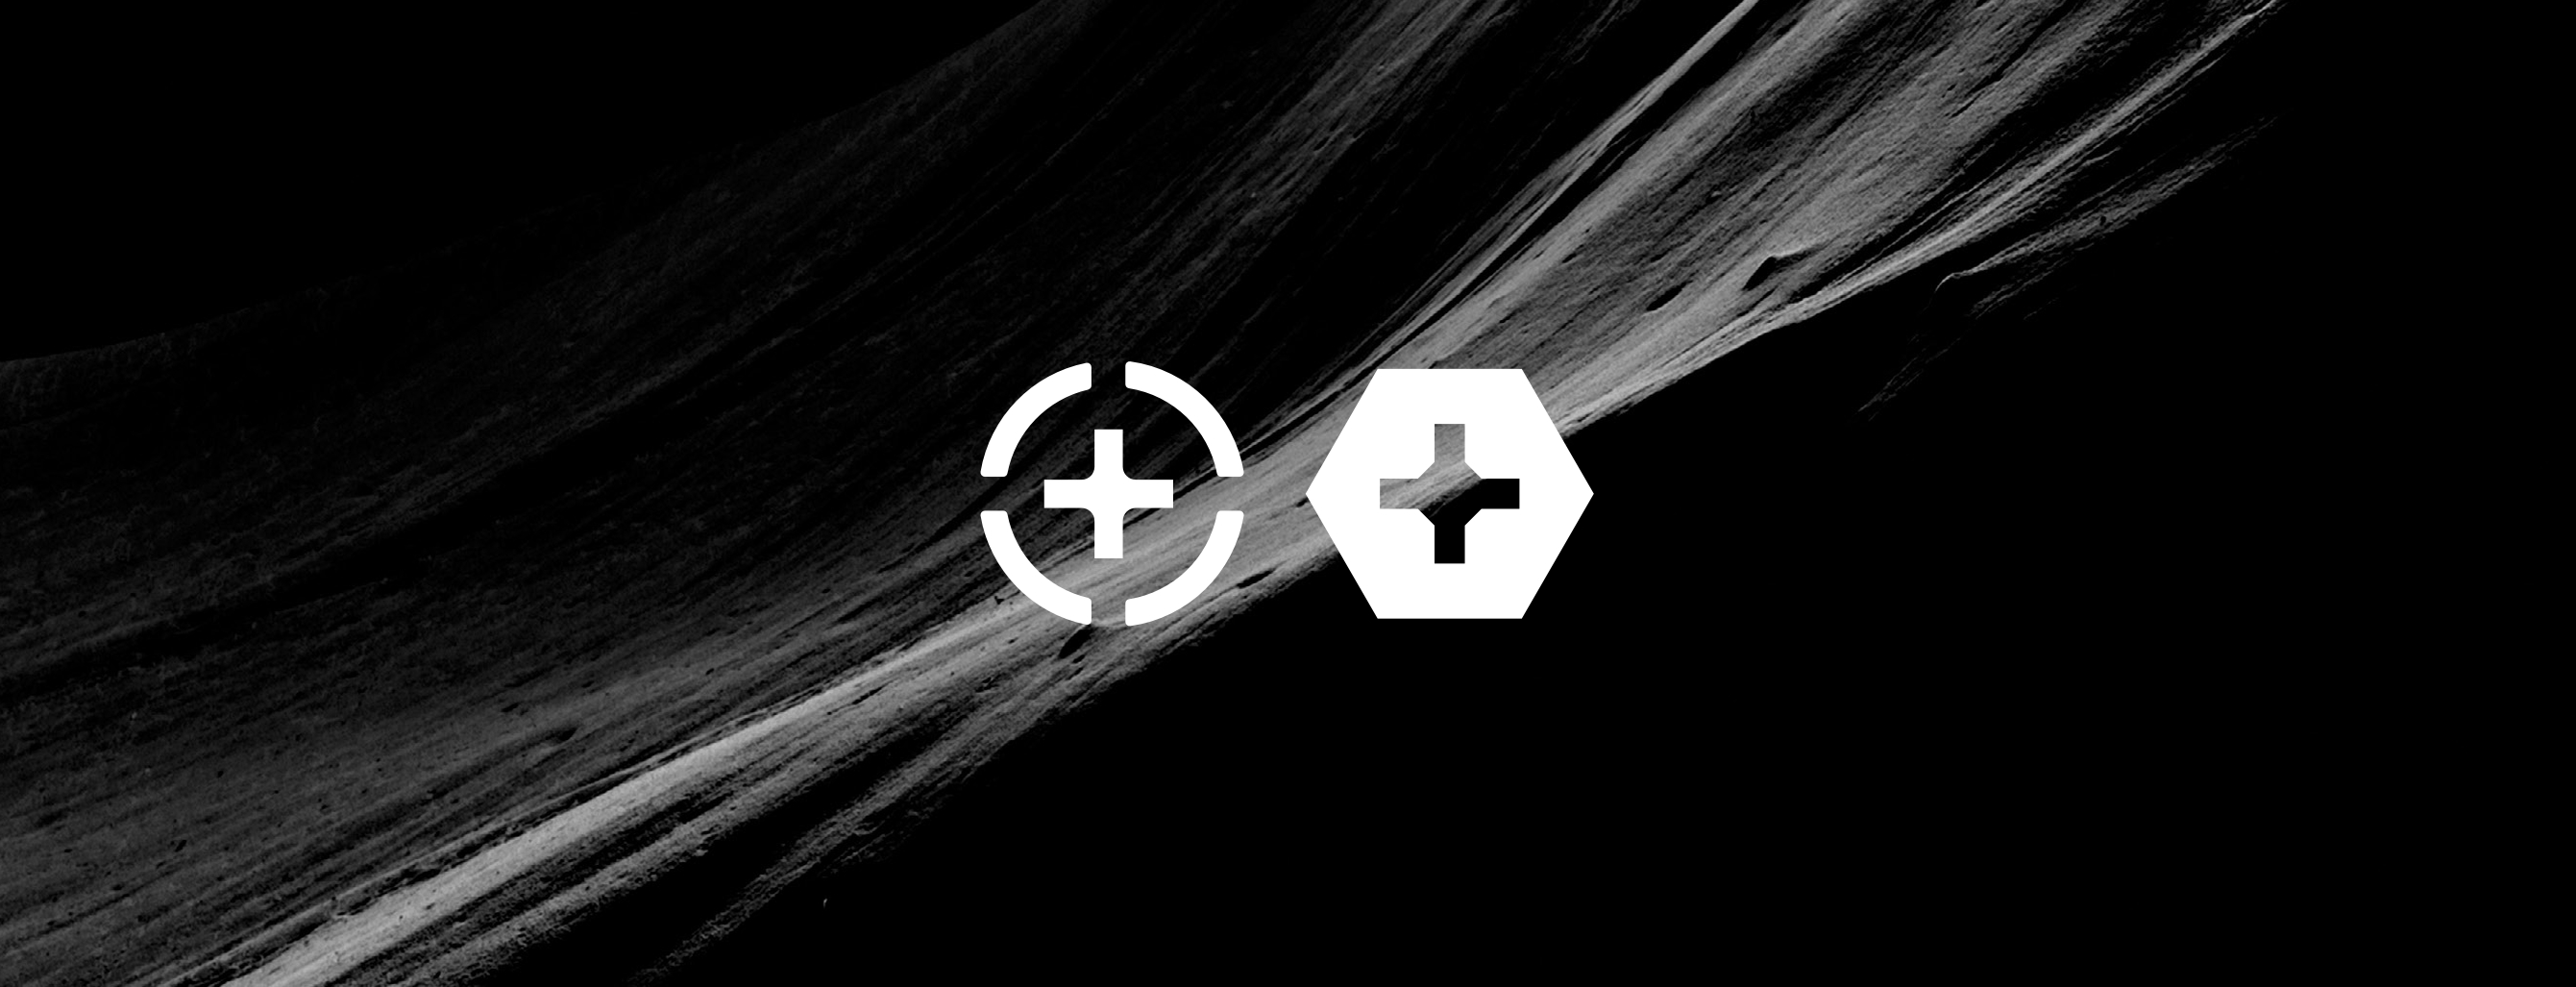 Make brand icons over abstract dark background